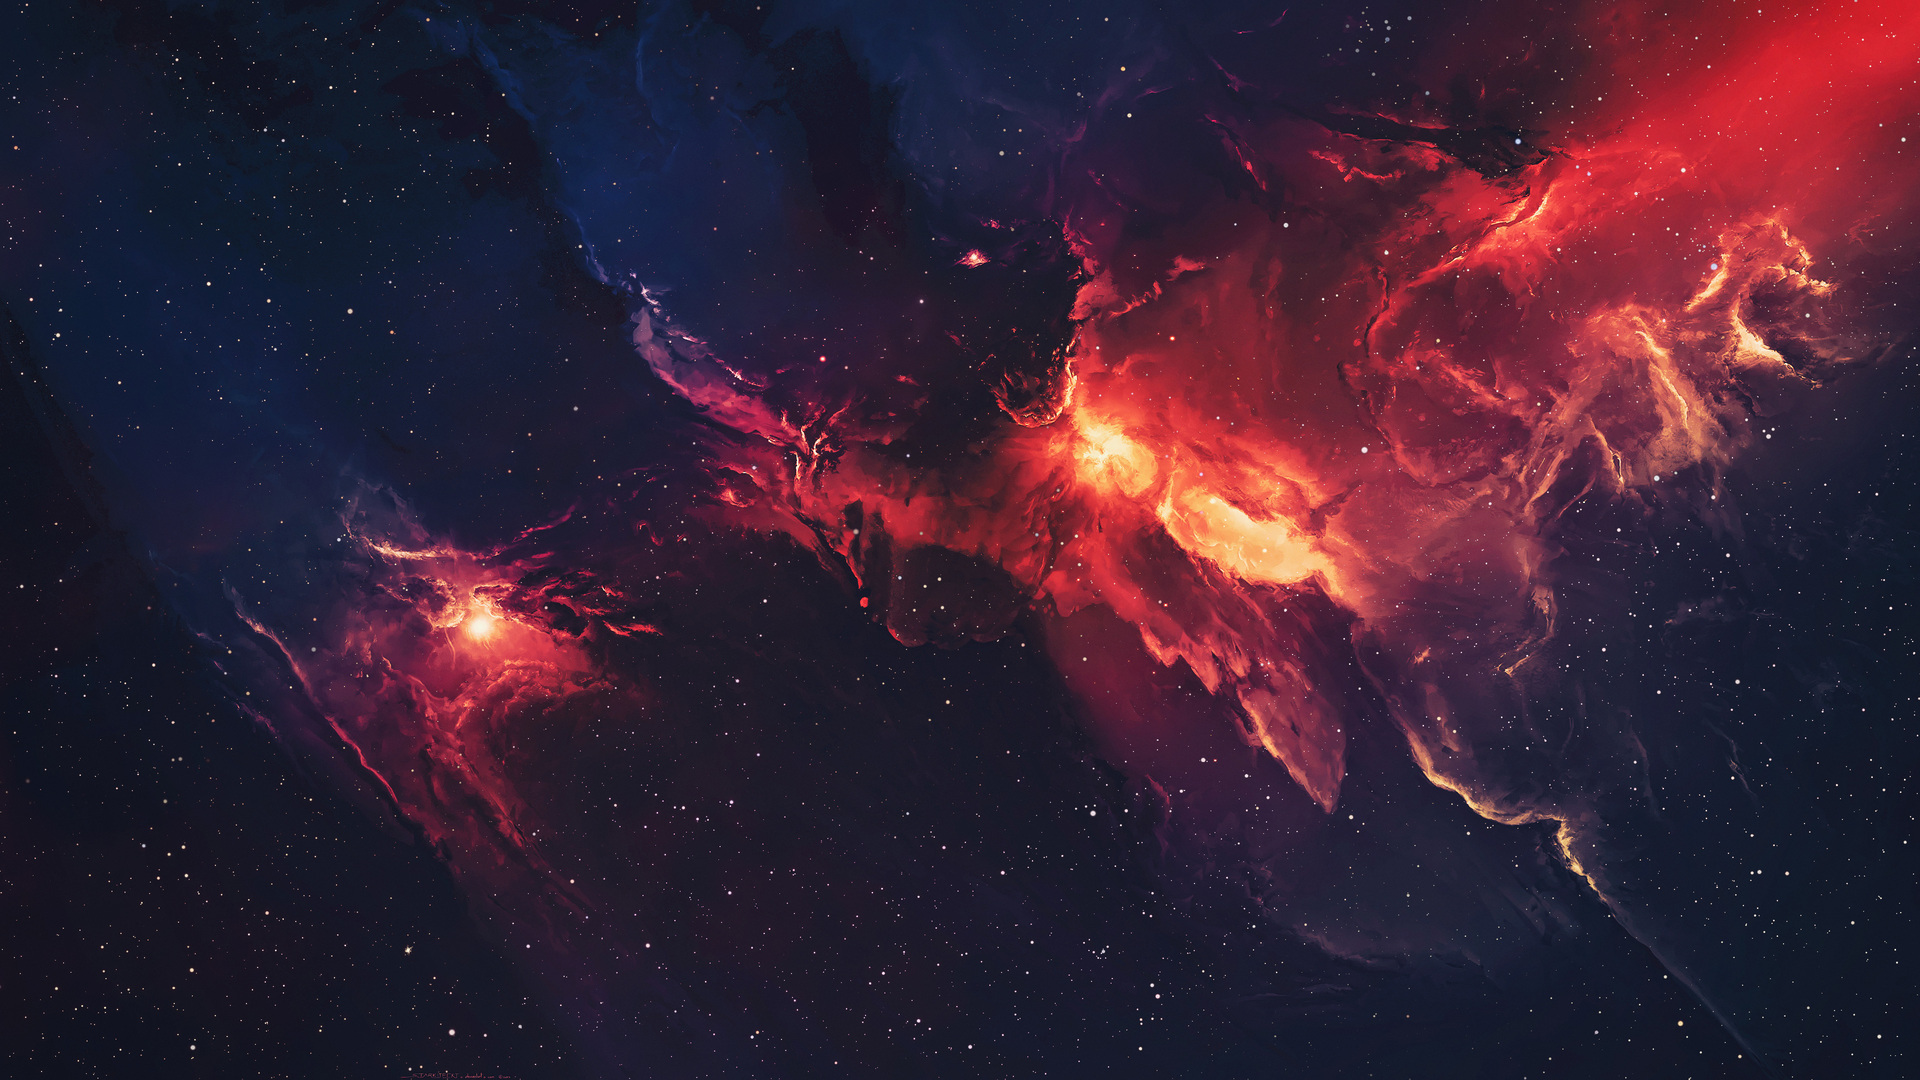 1920x1080 Galaxy Space Stars Universe Nebula 4k Laptop Full